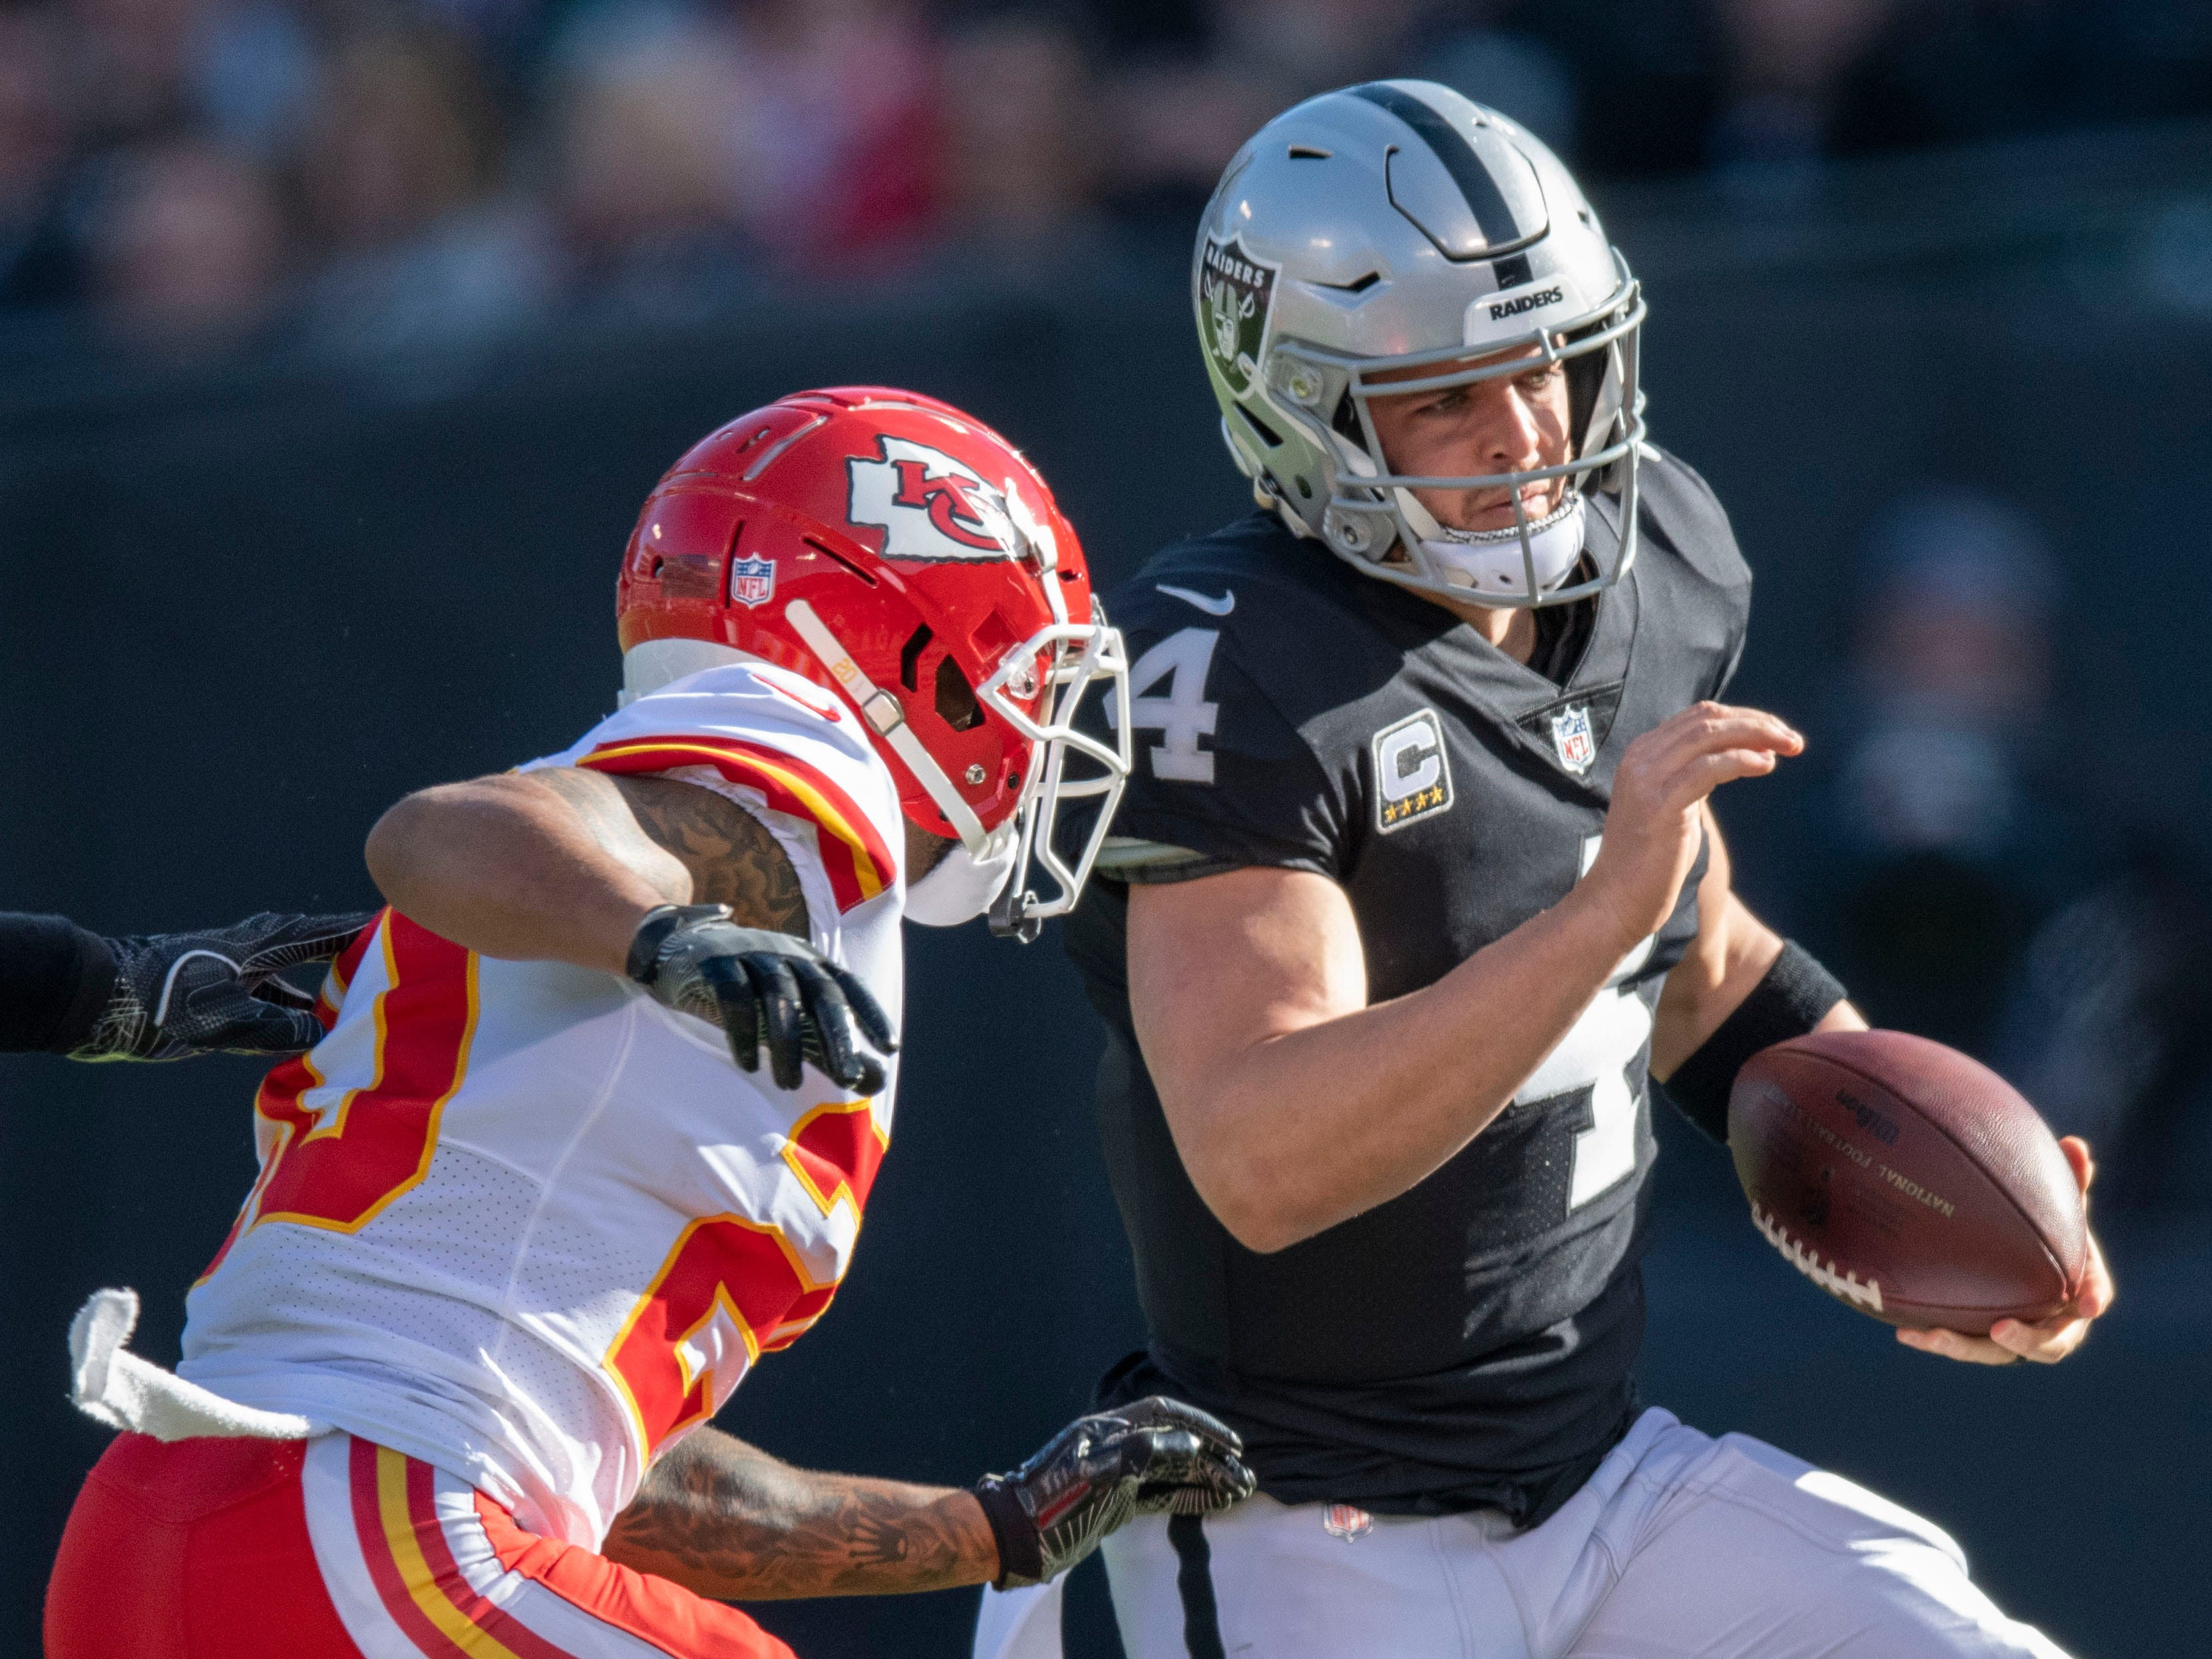 30. Raiders (31): Gave fans good show Sunday, including season-best 171 rush yards. But as A's reveal plans, how many games do Raiders have left in Oakland?